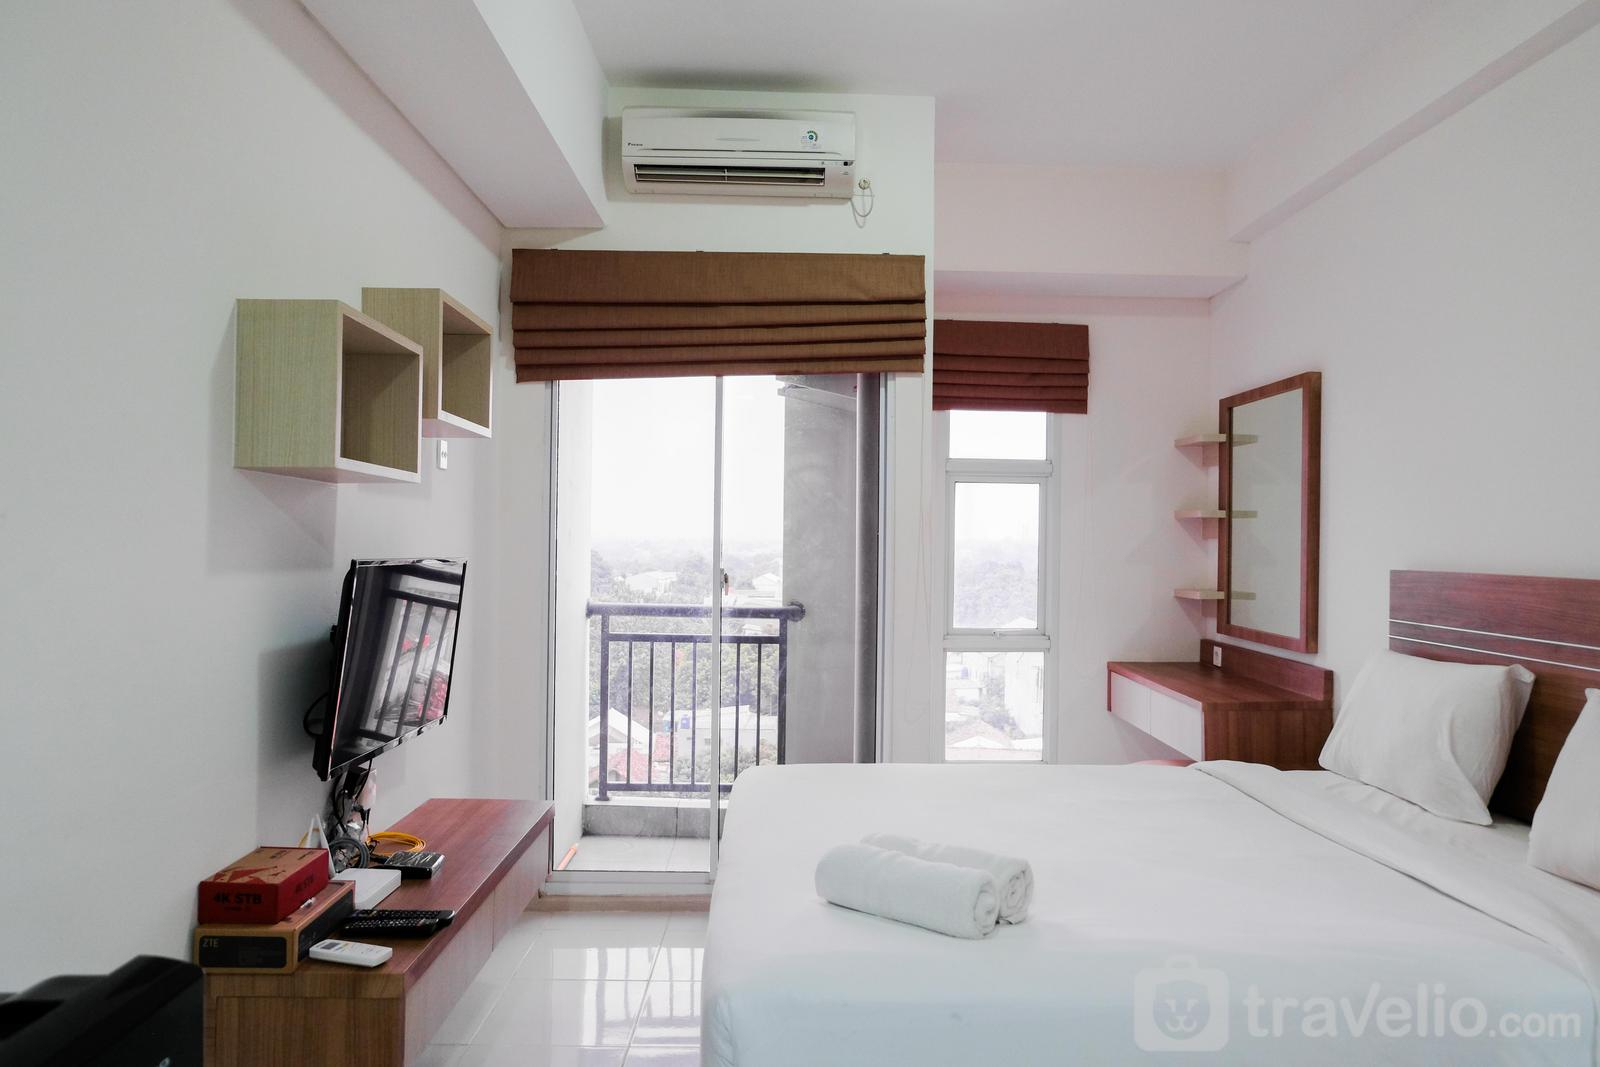 Akasa Pure Living Apartement - Minimalist Studio Akasa Pure Living Apartement By Travelio